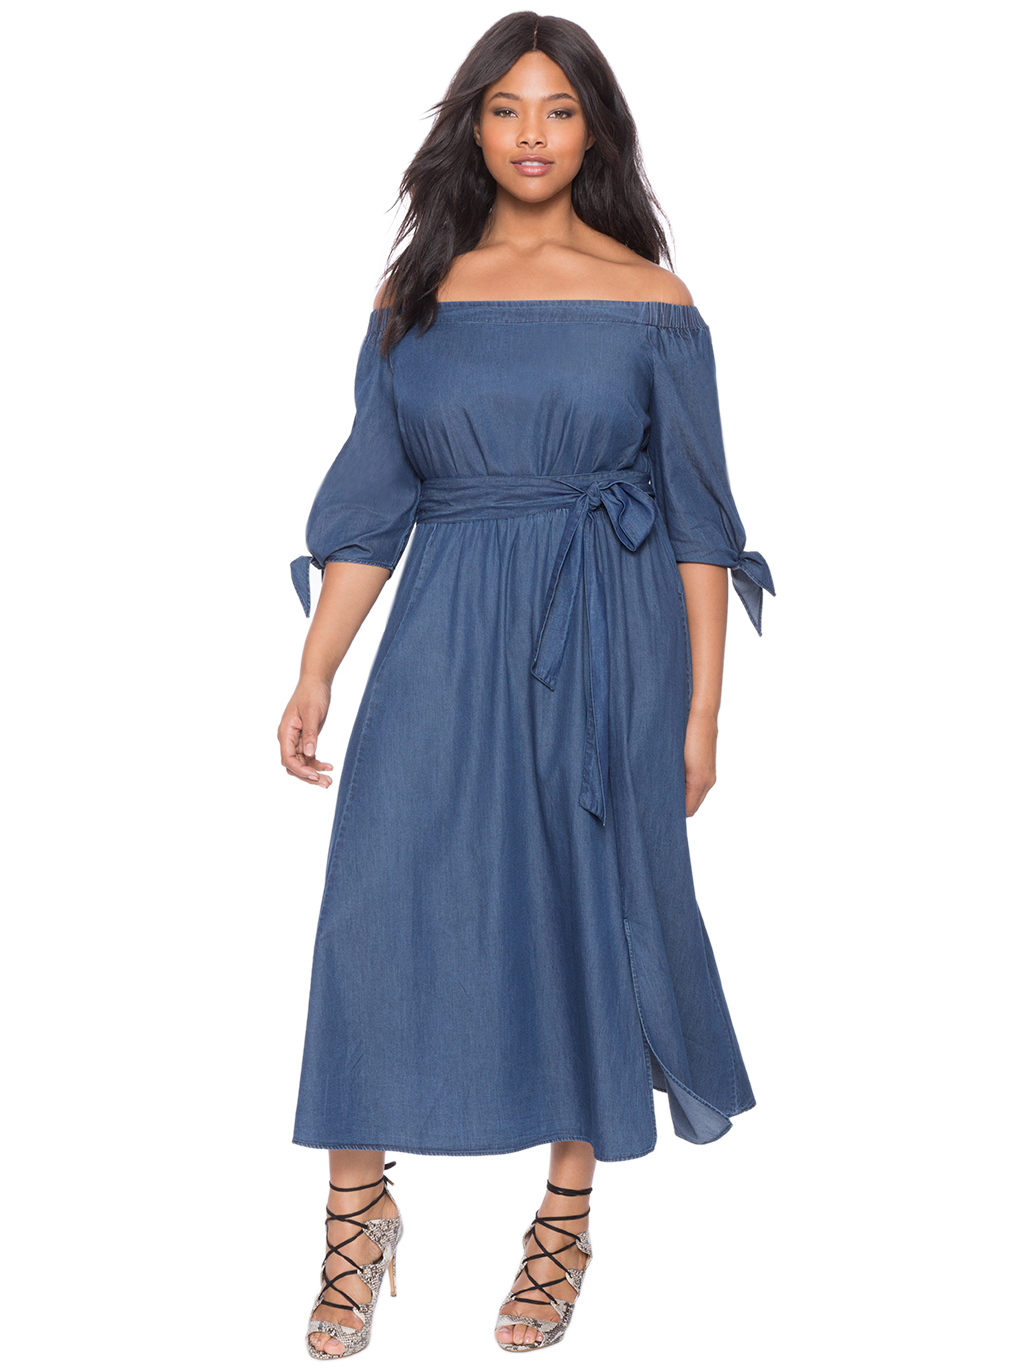 Chambray Dresses For Women Www Pixshark Com Images